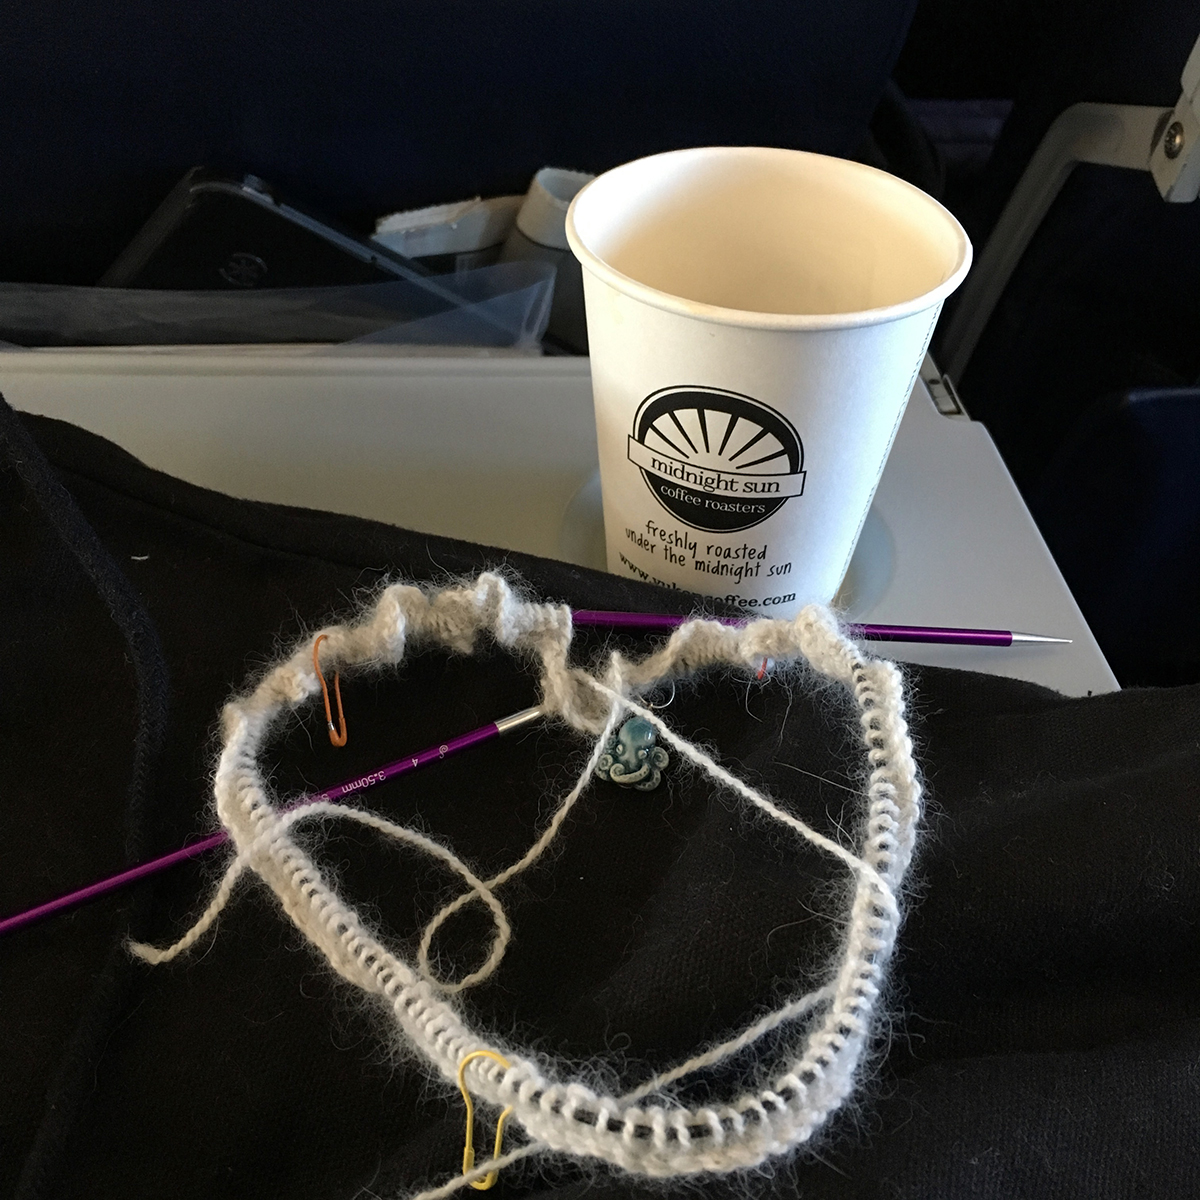 A round of knitting, just cast on, and an empty coffee cup on an airplane seat back table. A tablet sticks out from the seat back pocket in back of the photo.